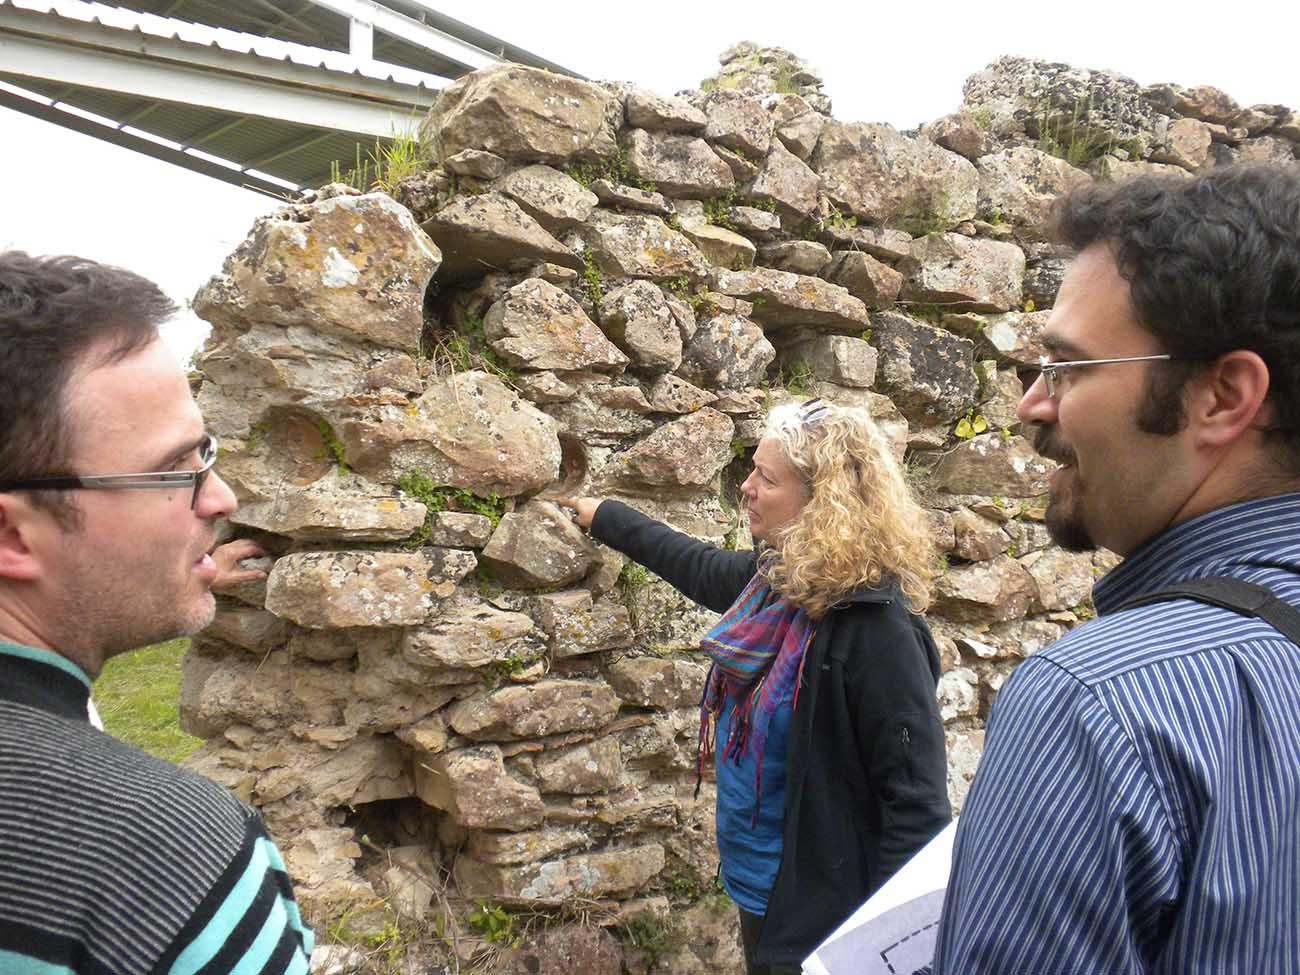 (Left to Right) Gil Fishhof (Tel Aviv University), Edna J. Stern (Israel Antiquities Authority), and Michalis Olympios (University of Cyprus) discuss the construction of the wall in question.